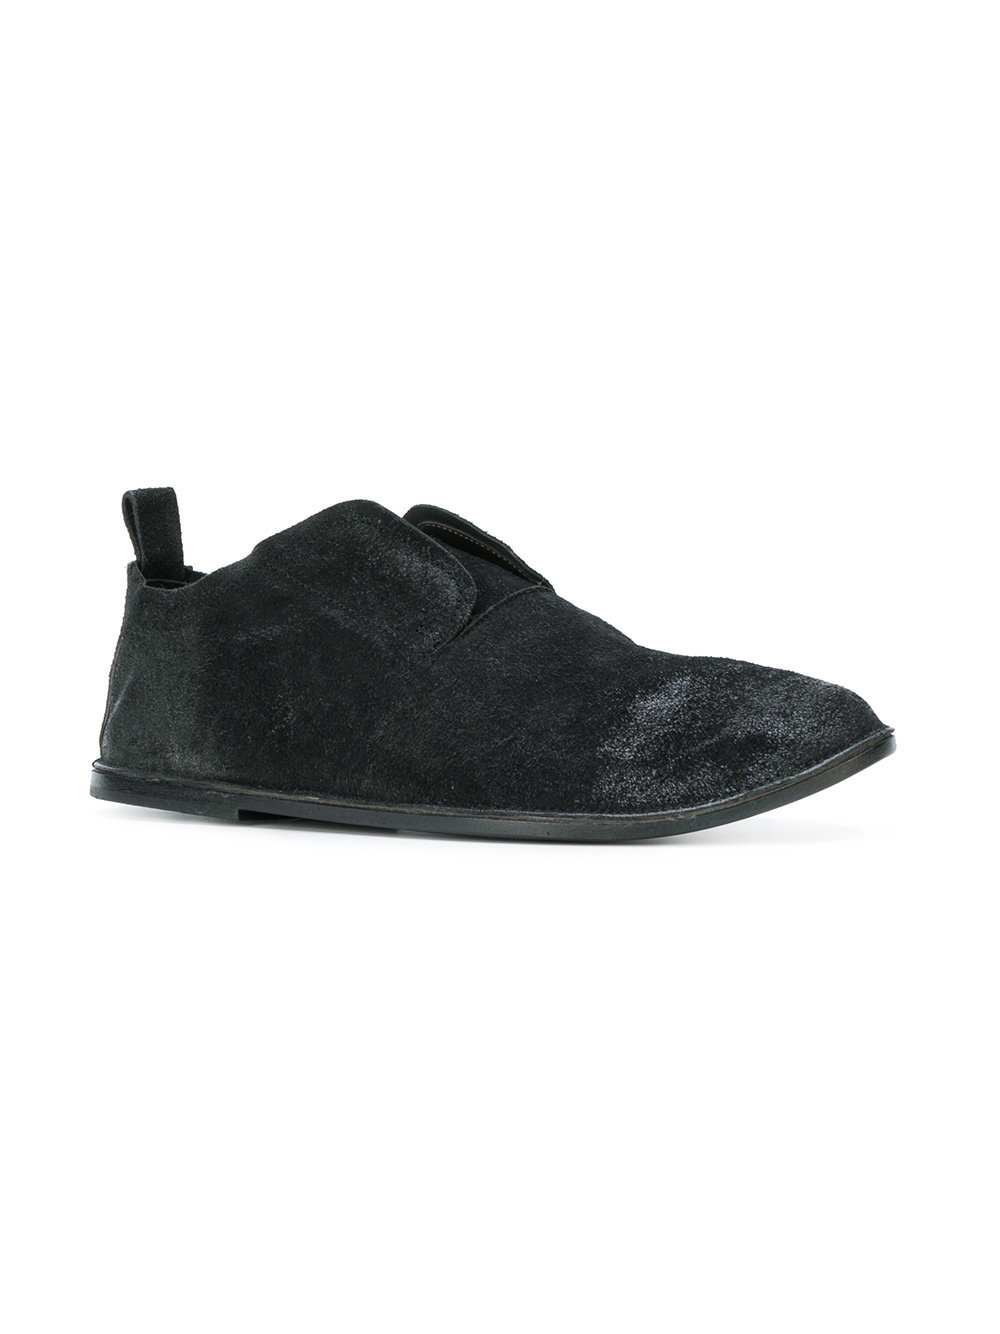 Marsèll Pull On Loafers